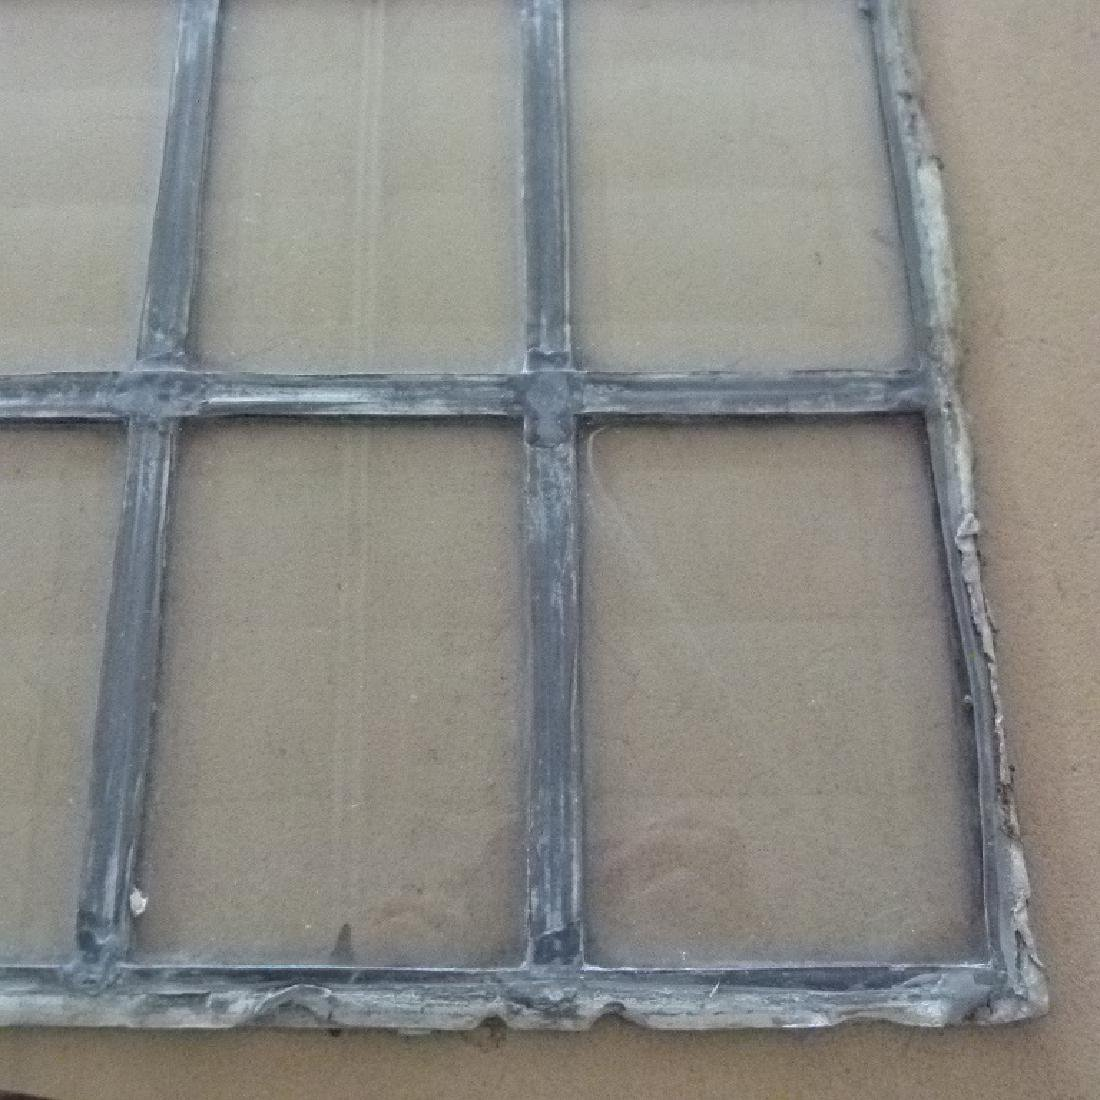 LOT ASSORT. MISSION STYLE LEADED GLASS WINDOWS - 6